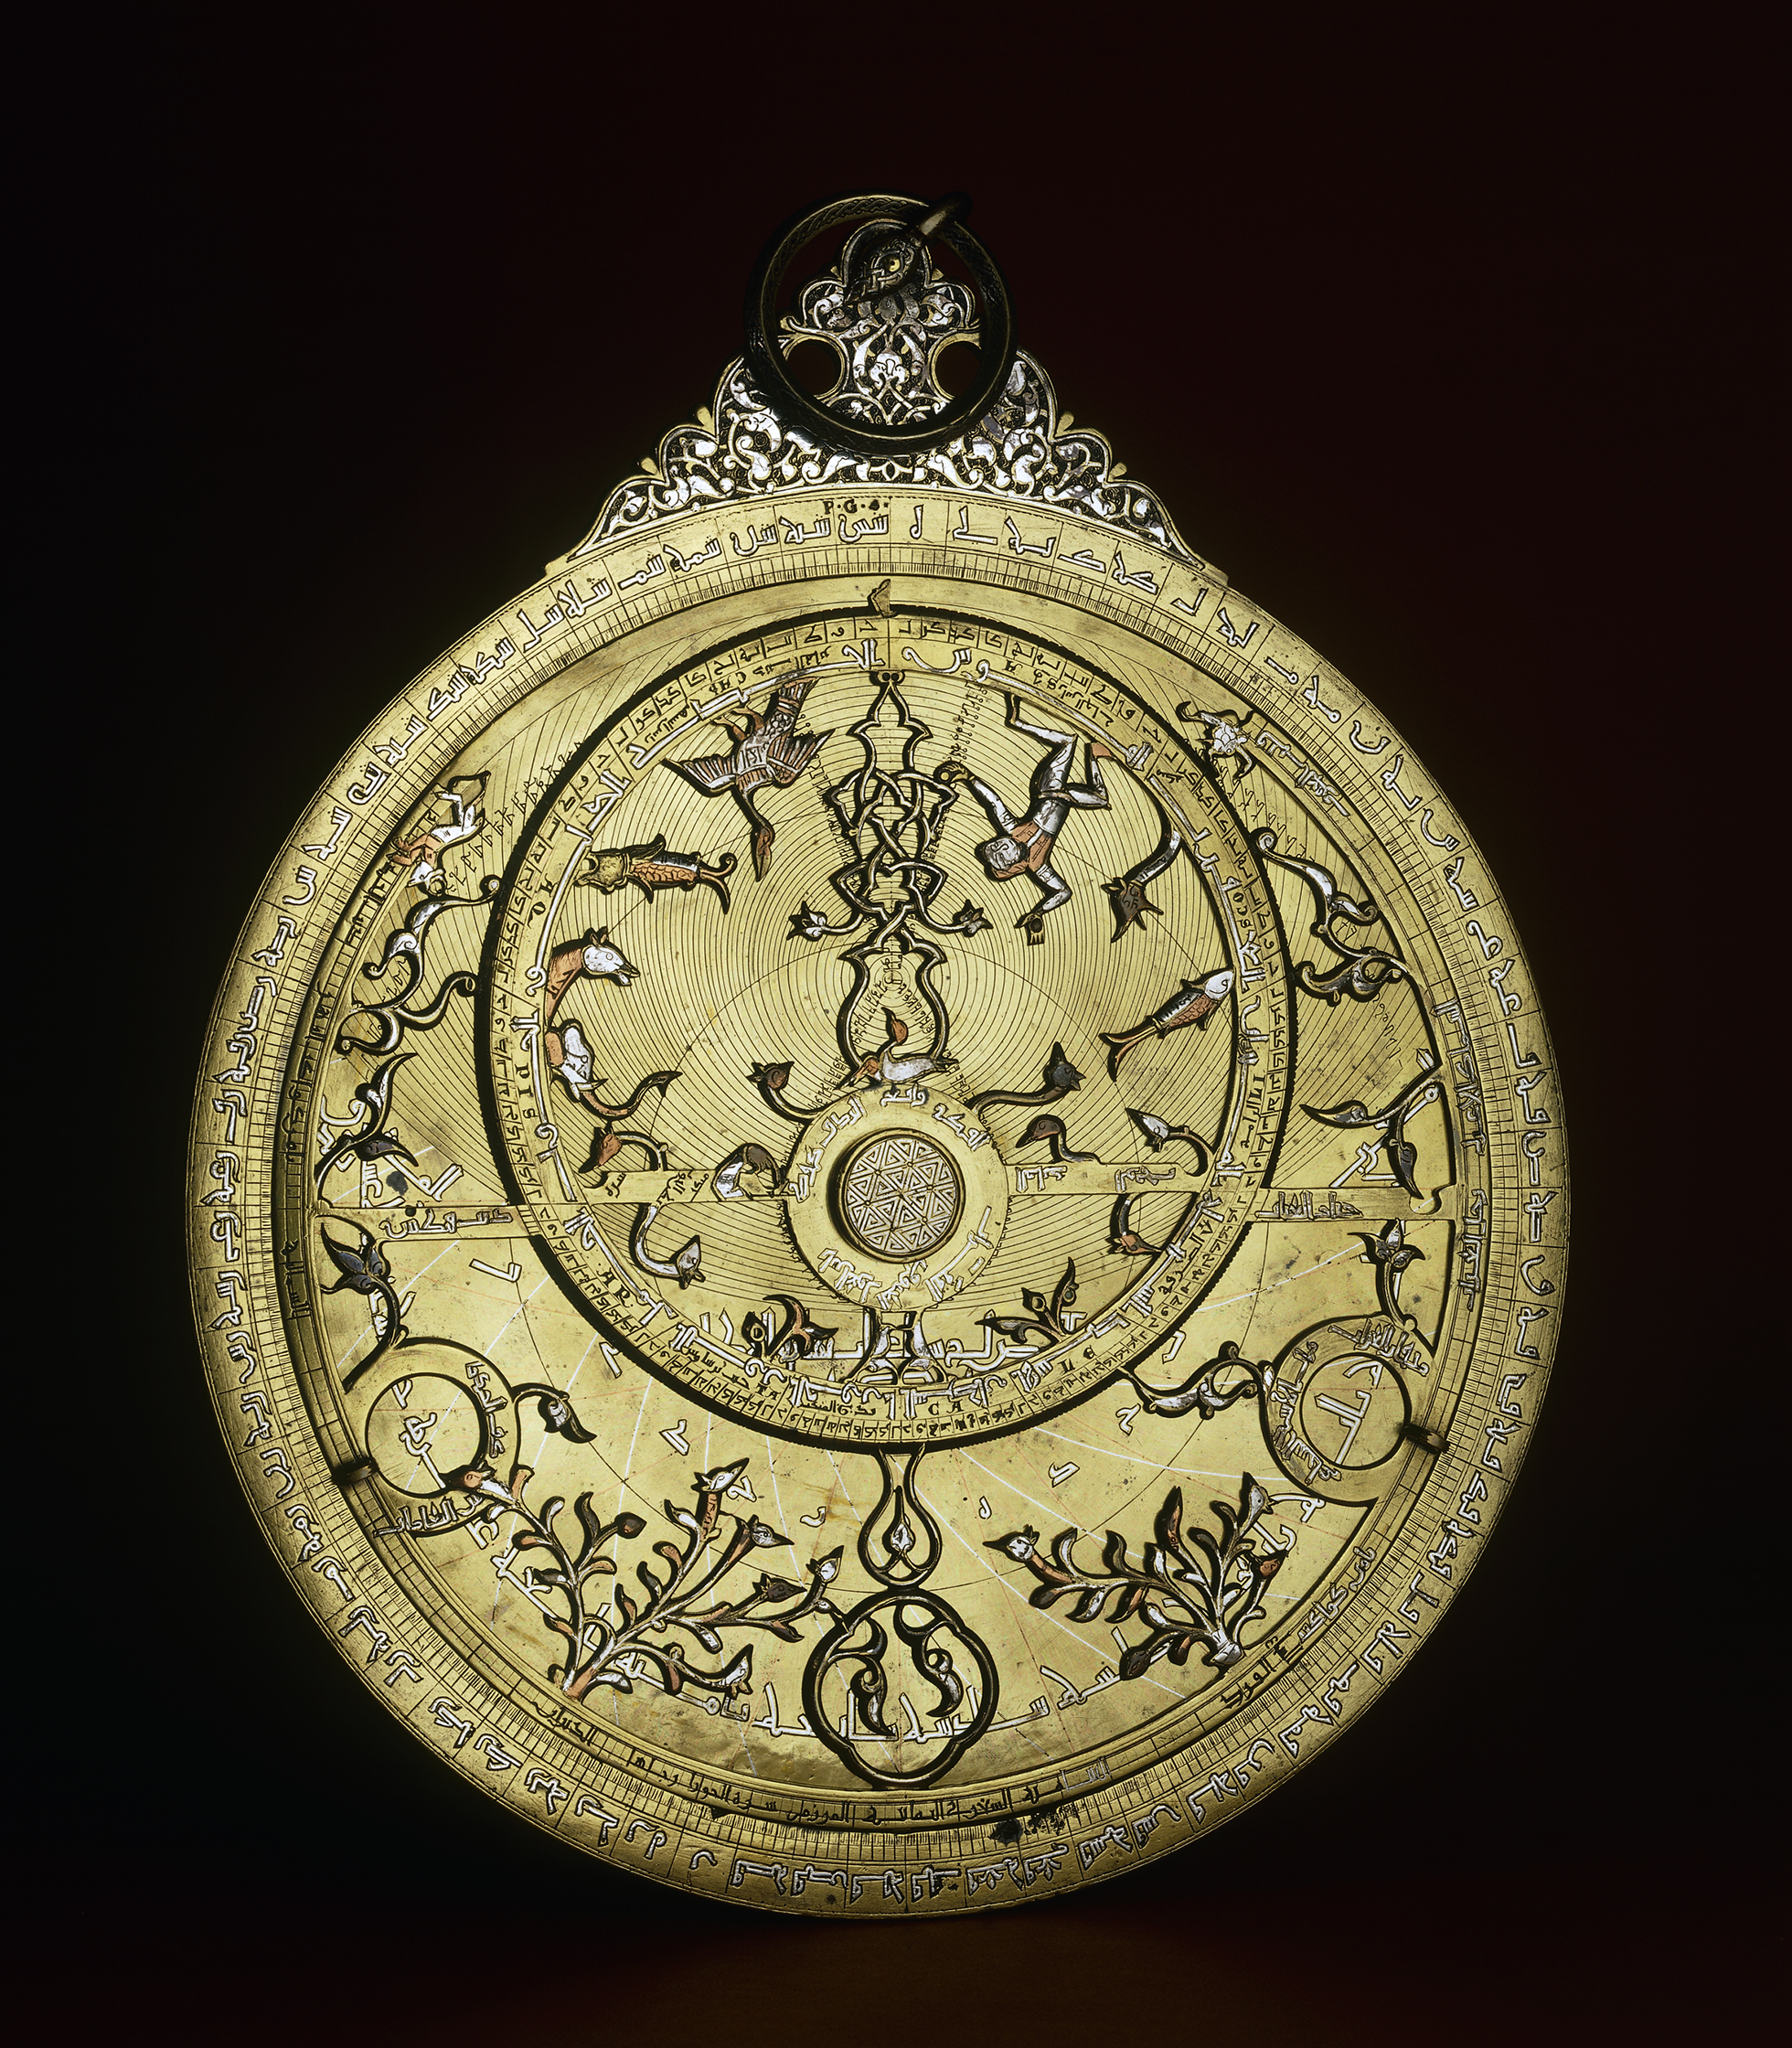 Astrolabe, made of brass inlaid with silver and copper. Probably southeast Turkey, northern Iraq or Syria, AD 1240/1.   https://blog.britishmuseum.org/a-journey-through-the-islamic-world-in-eight-objects/?_ga=2.57084393.2106655954.1556016349-1003548003.1556016349